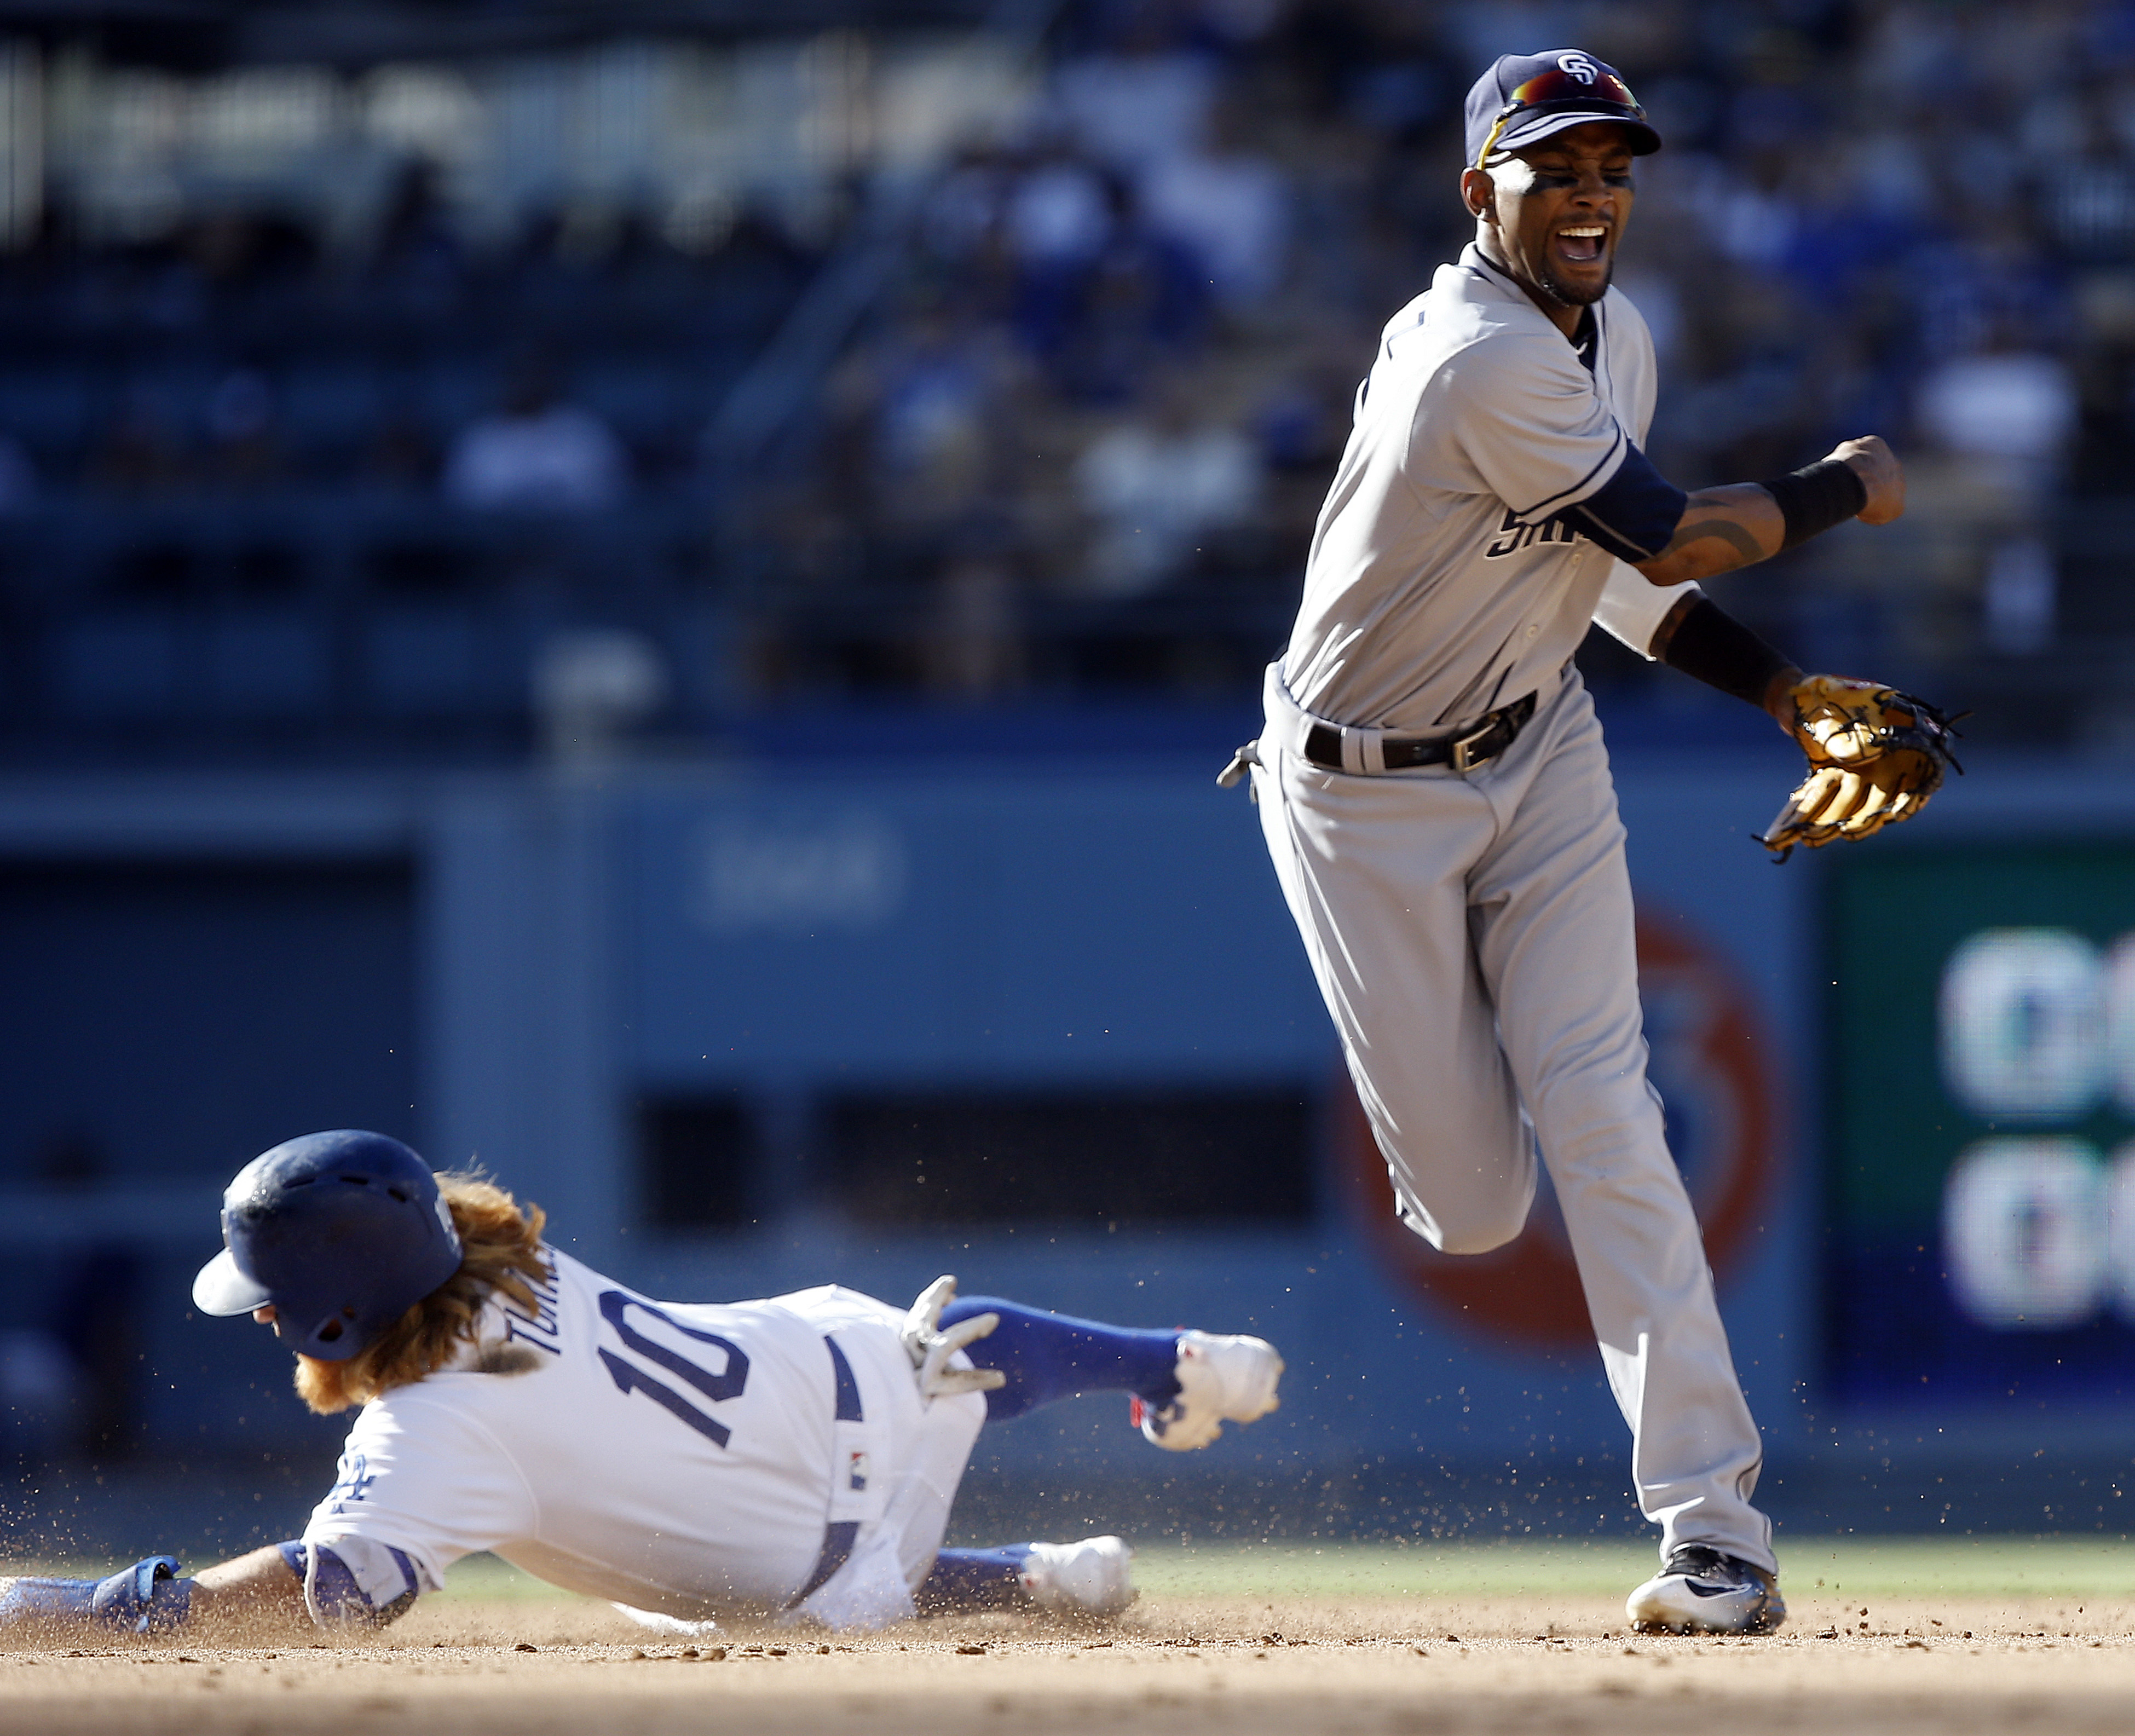 San Diego Padres shortstop Alexei Ramirez, right, watches his throw to first after forcing out Los Angeles Dodgers' Justin Turner, left, during the fifth inning of a baseball game in Los Angeles, Saturday, July 9, 2016. Corey Seager scored, and Adrian Gon